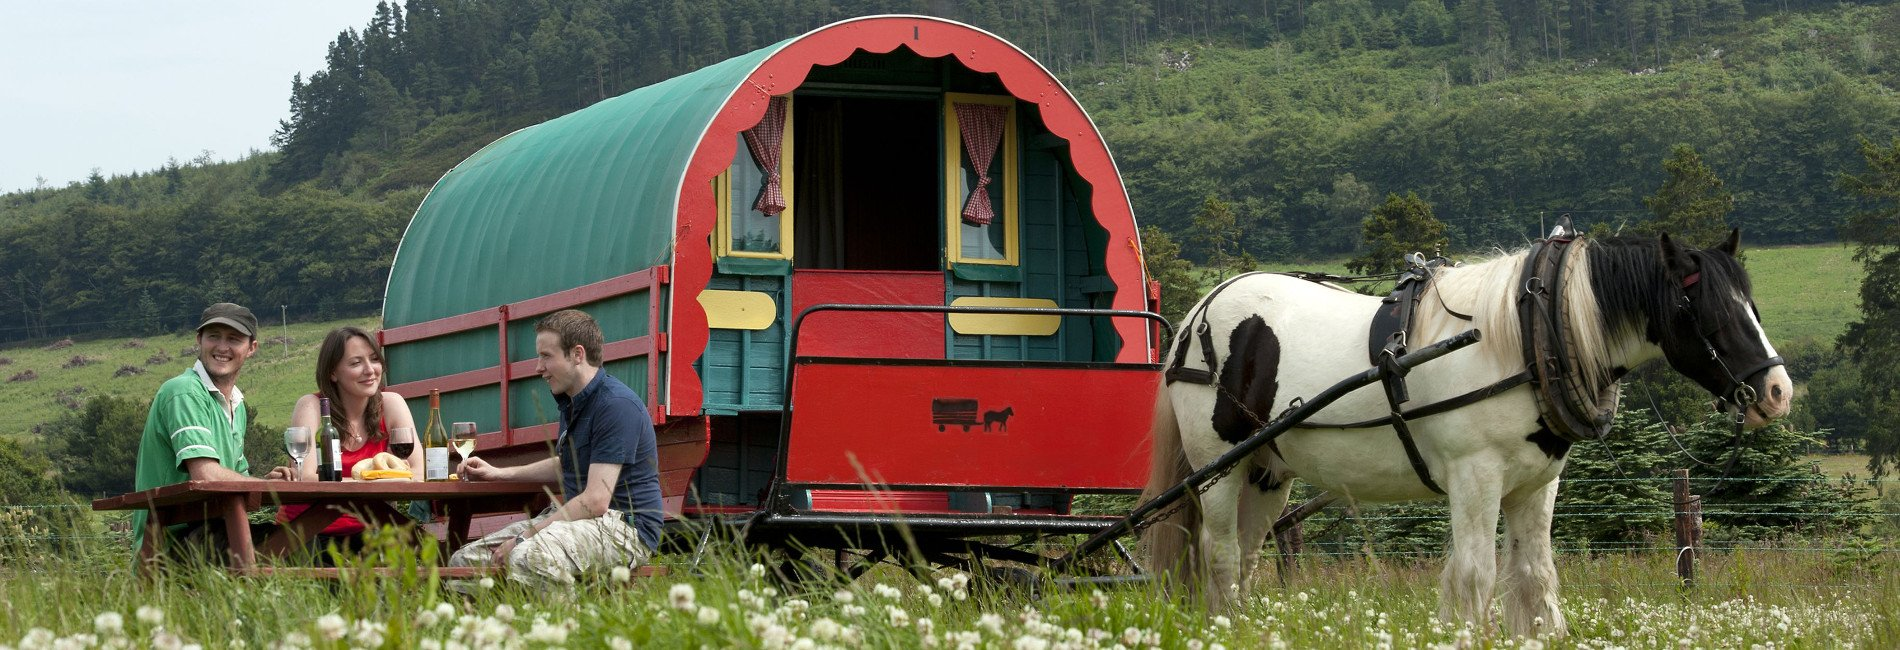 Eating in the wild with your gypsy horse caravan